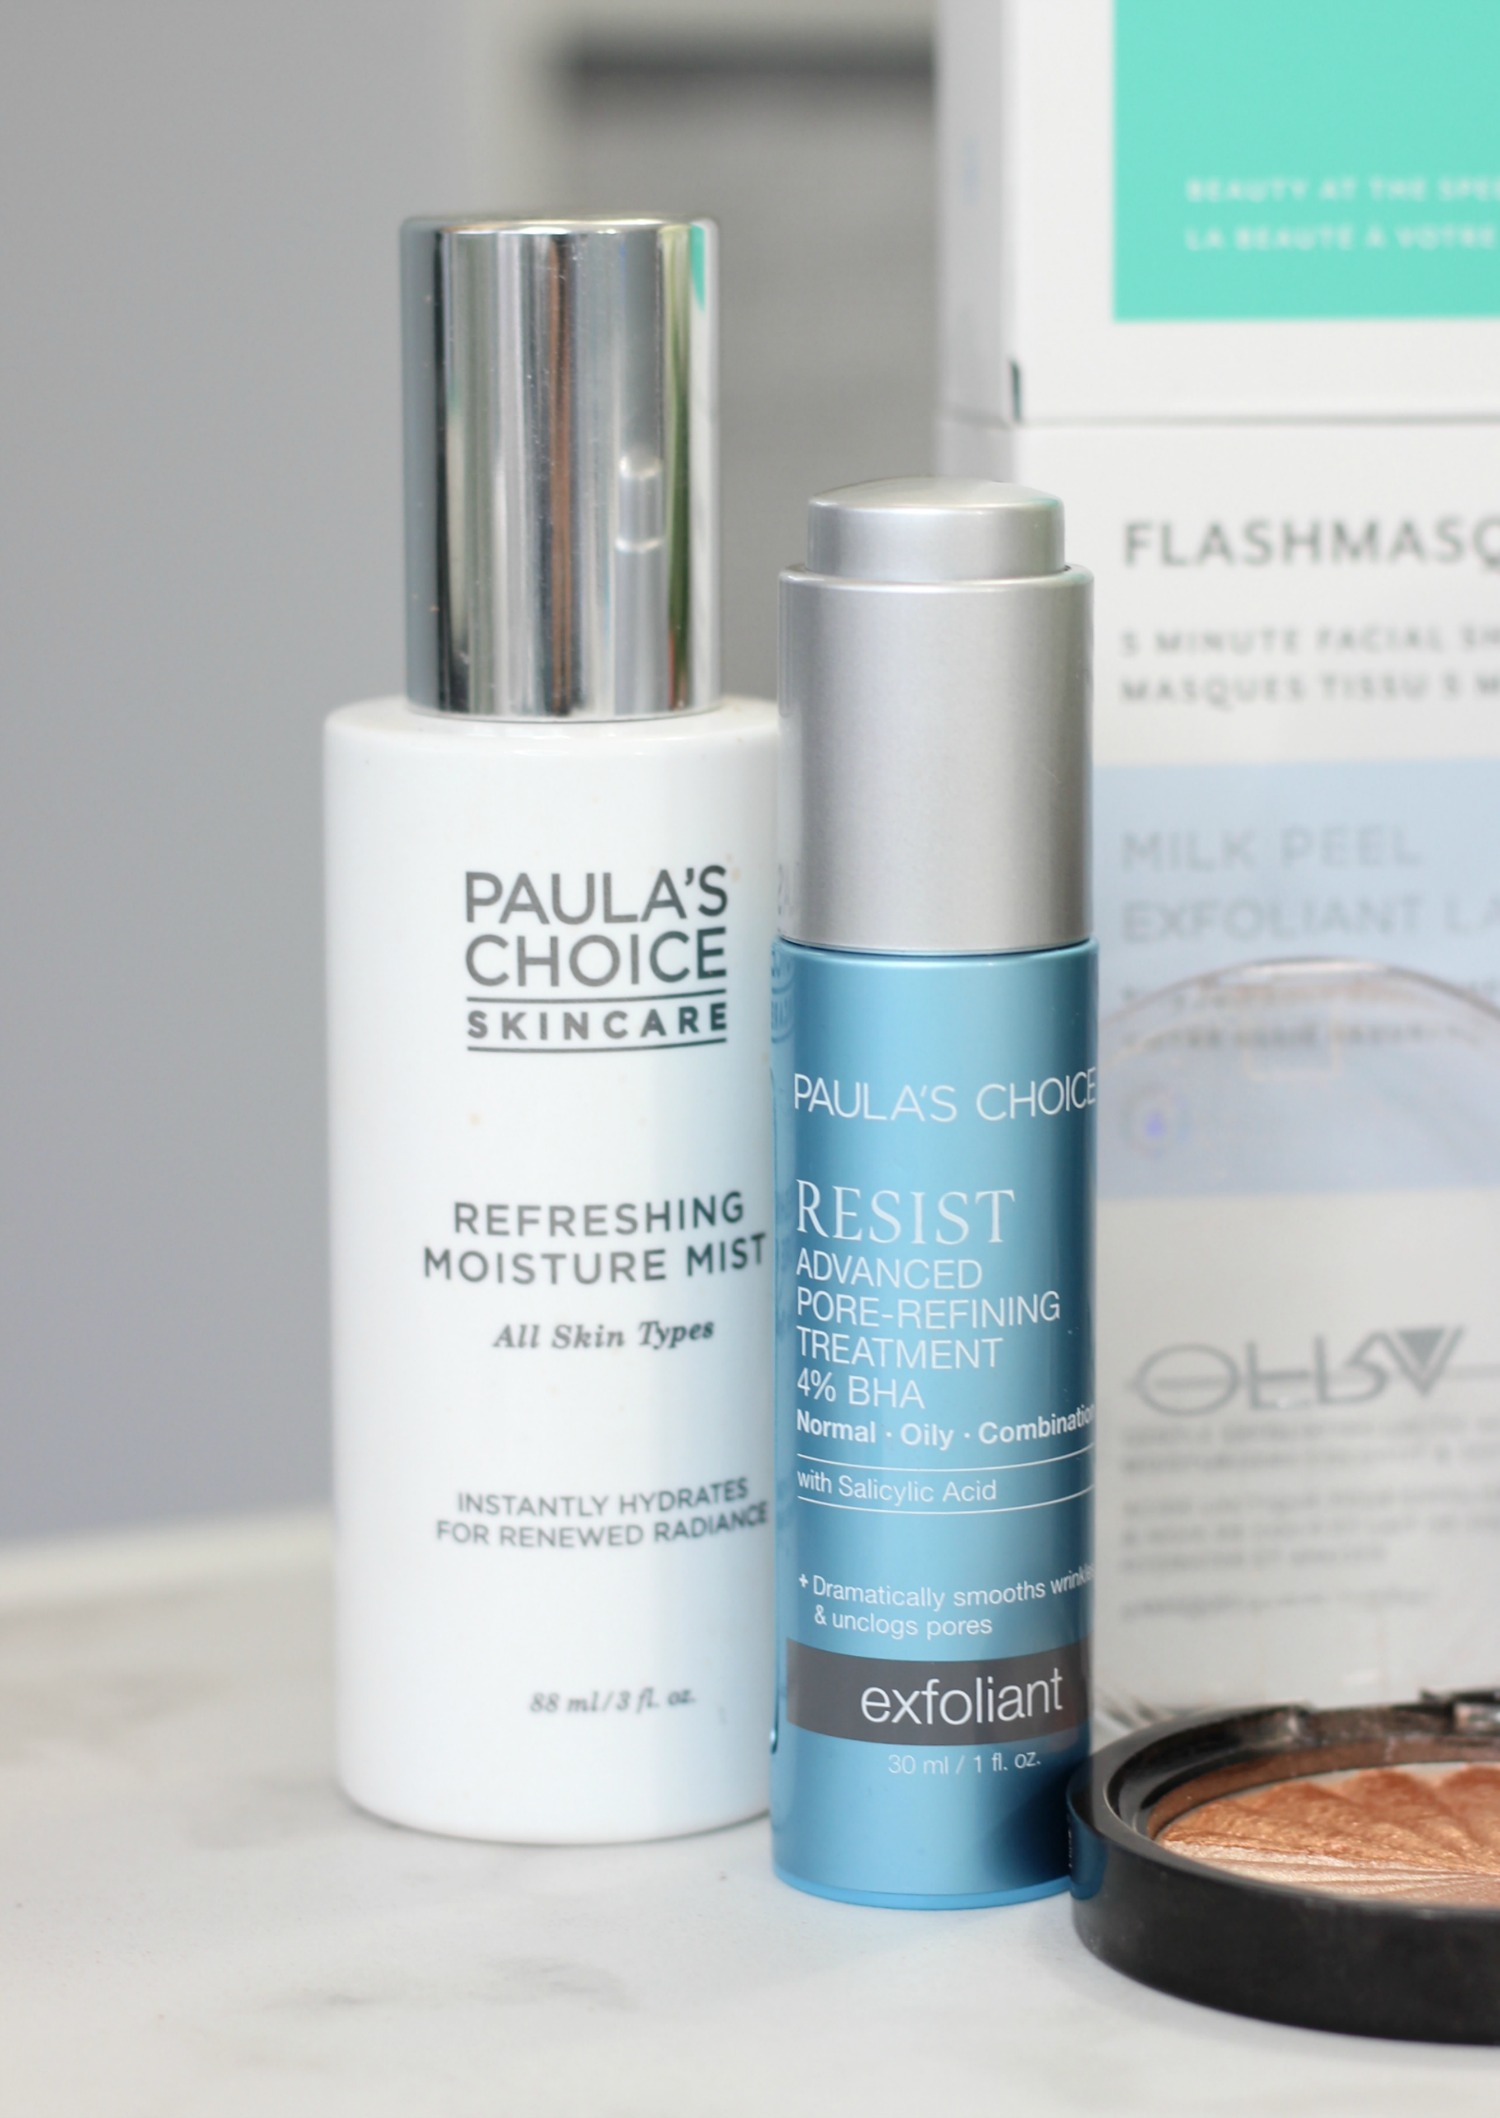 Favorite Products Glowing Skin Paula's Choice Refreshing Facial Mist Resist Advanced Pore Refining Treatment 4 percent BHA